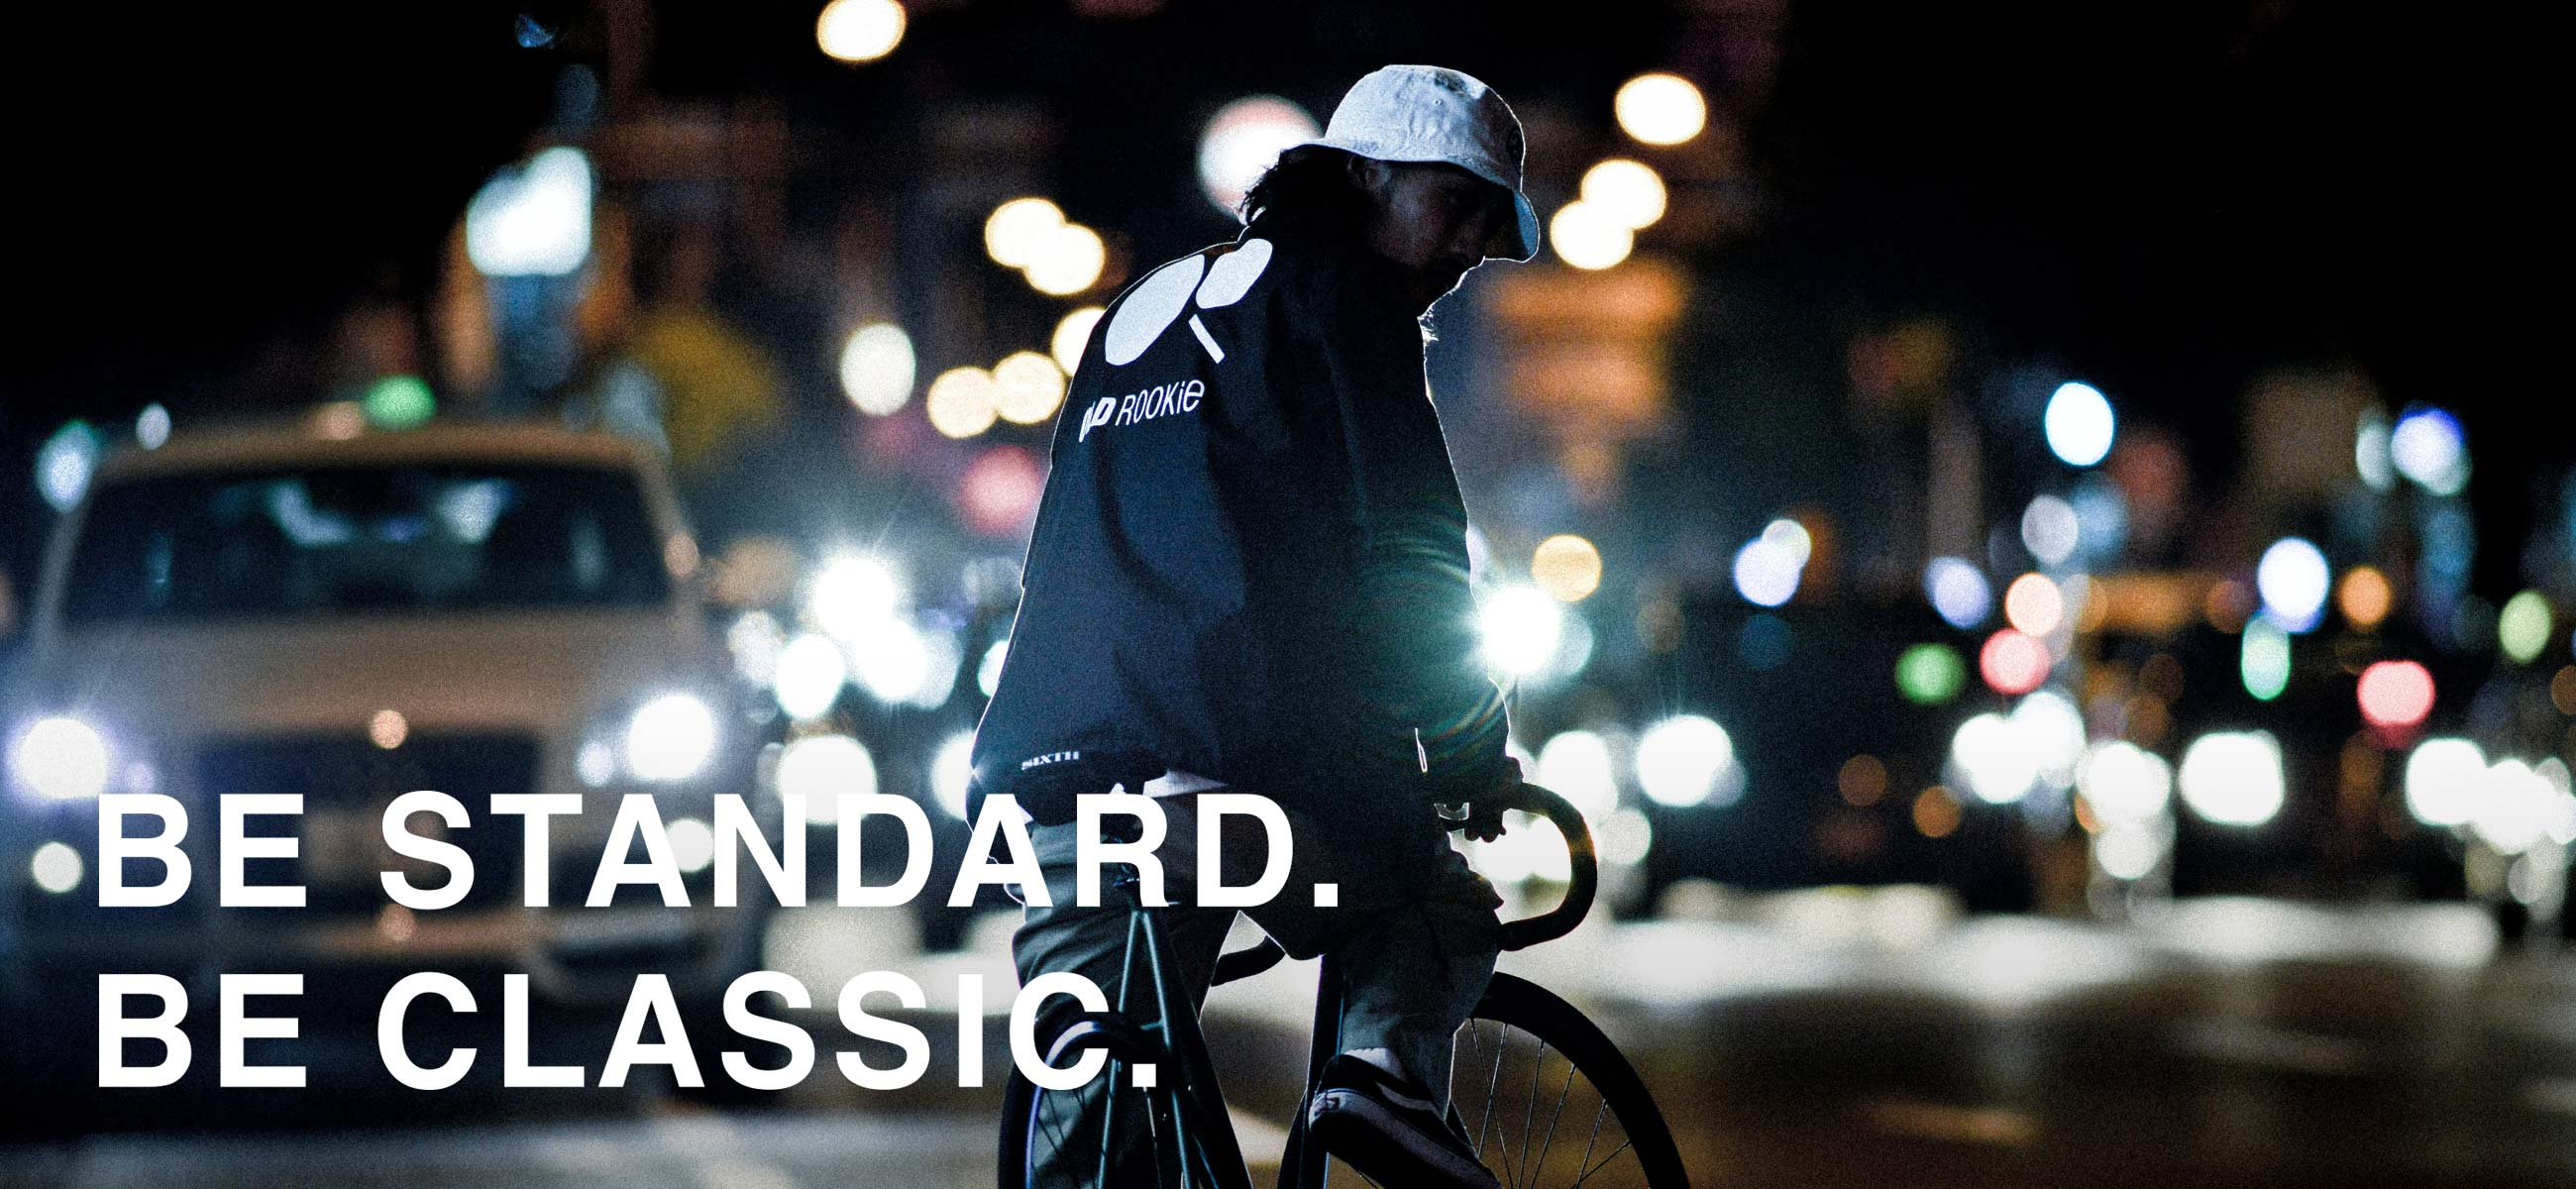 BE STANDARD. BE CLASSIC.